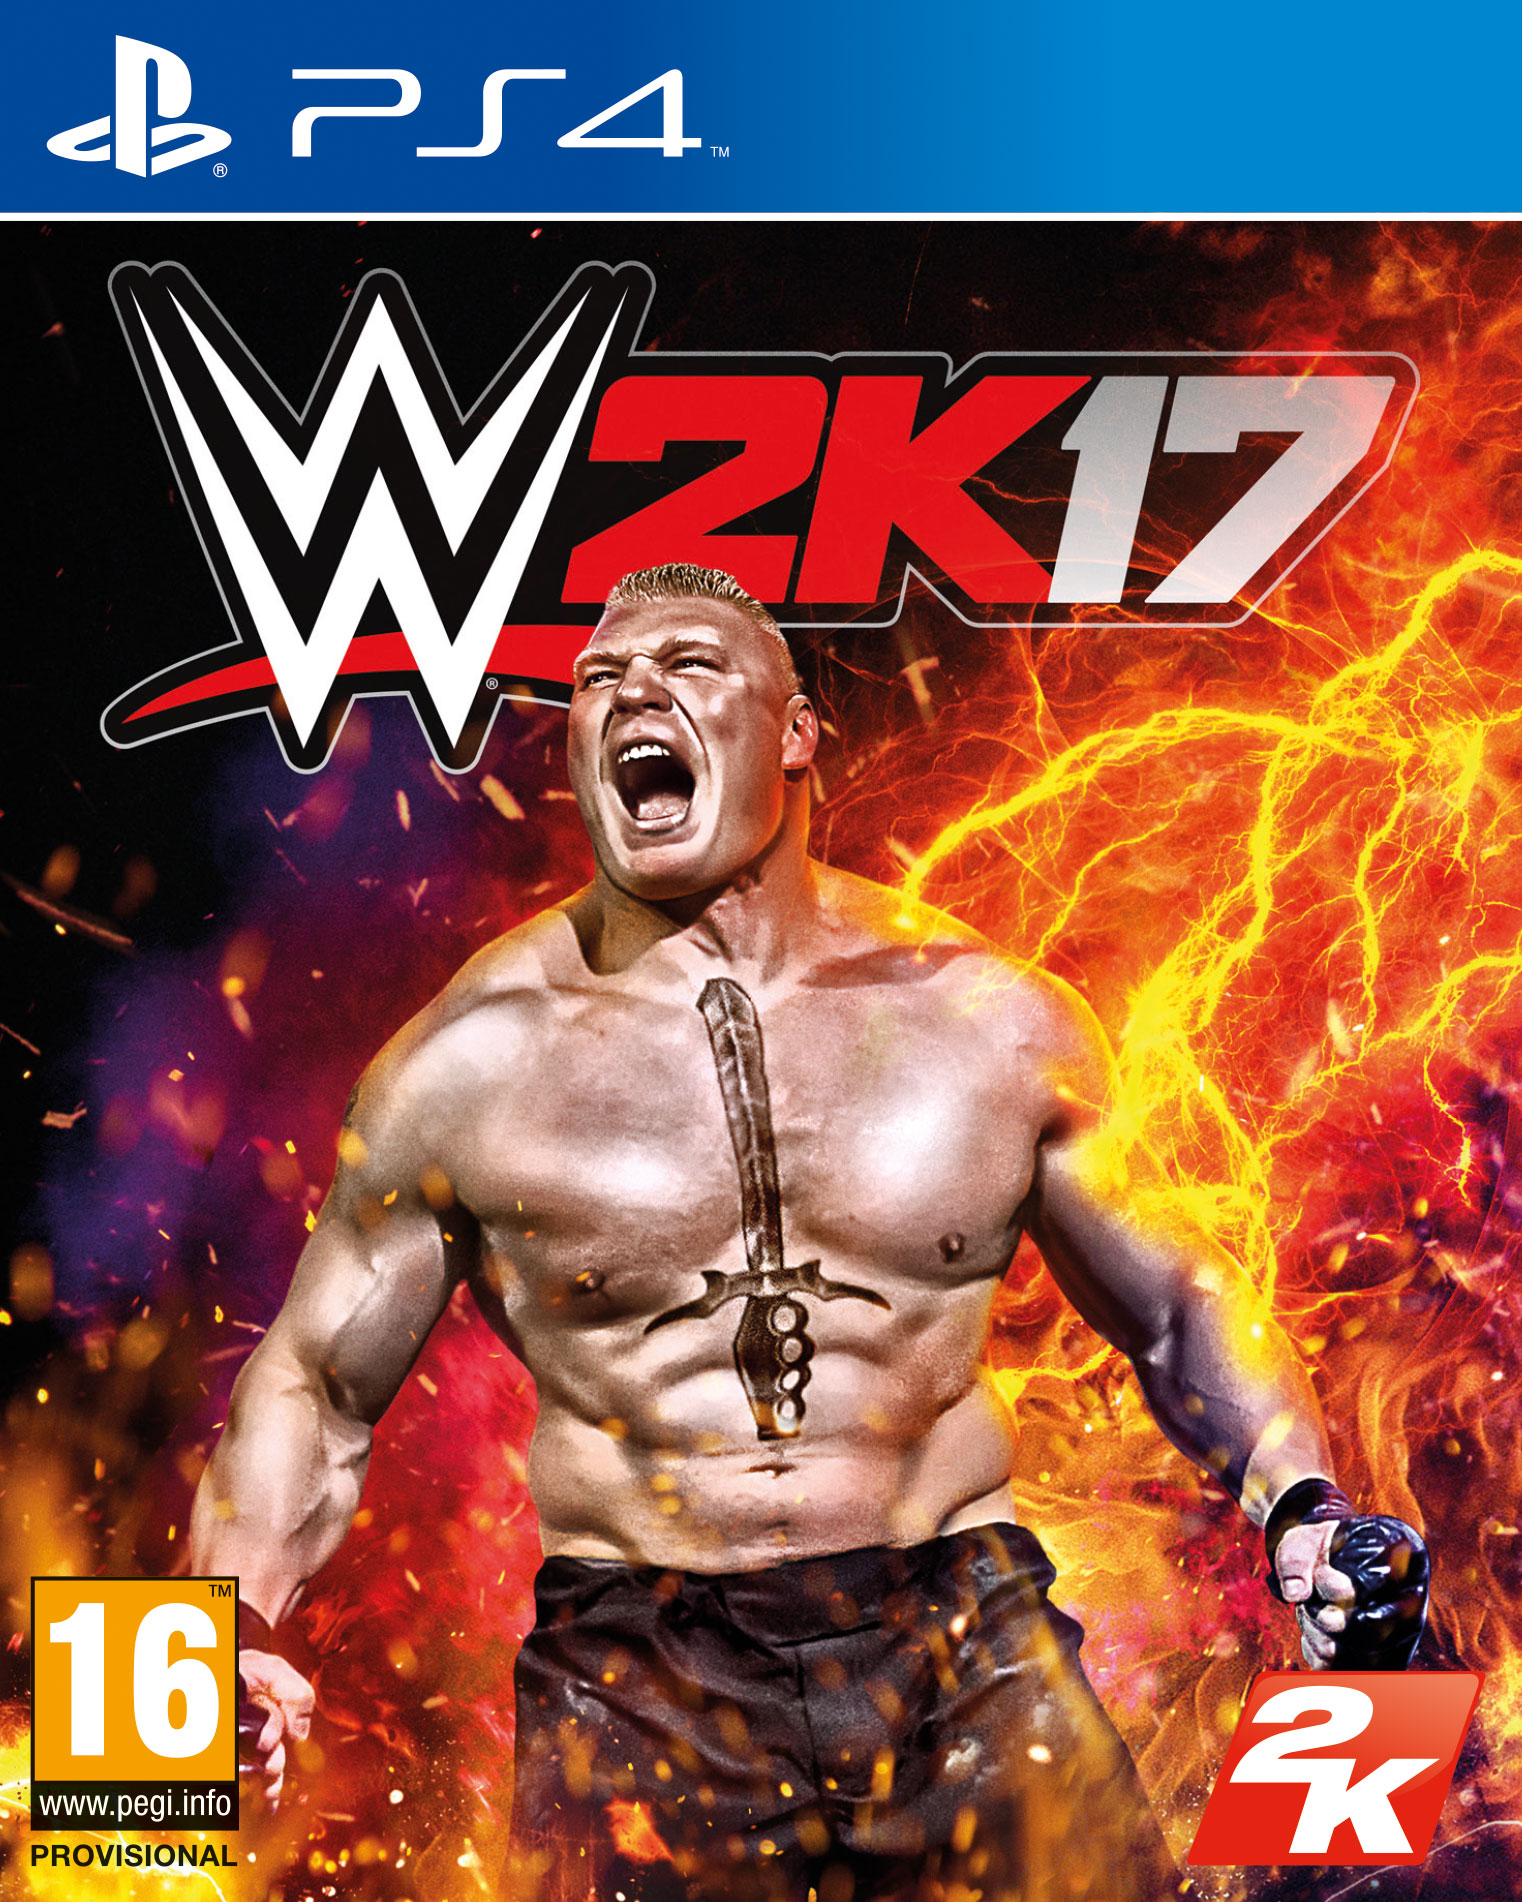 WWE 2K17 PS4 cover featuring Brock Lesnar